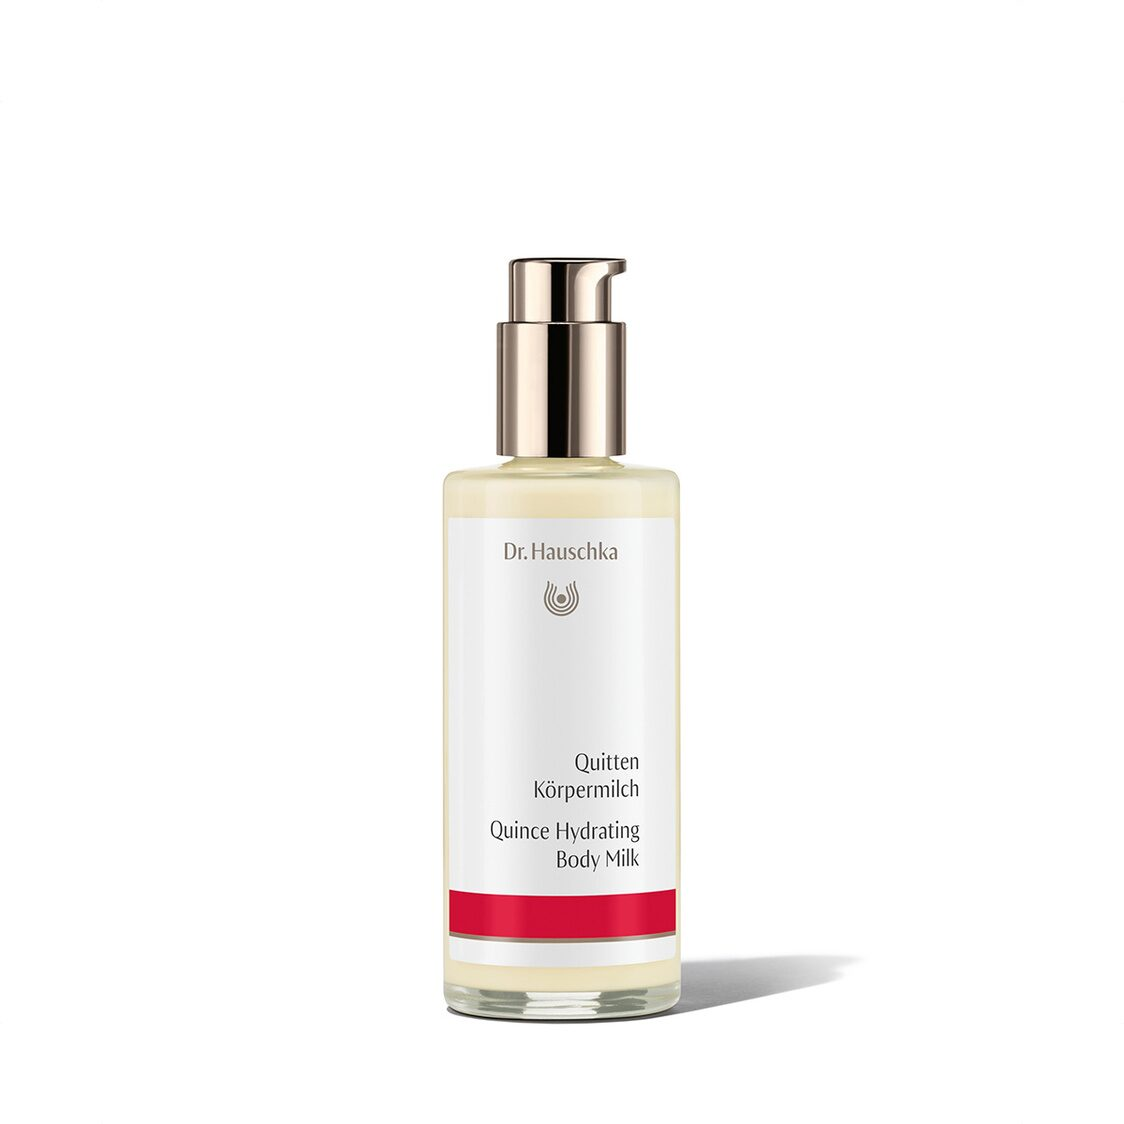 Quince Hydrating Body Milk 145ml